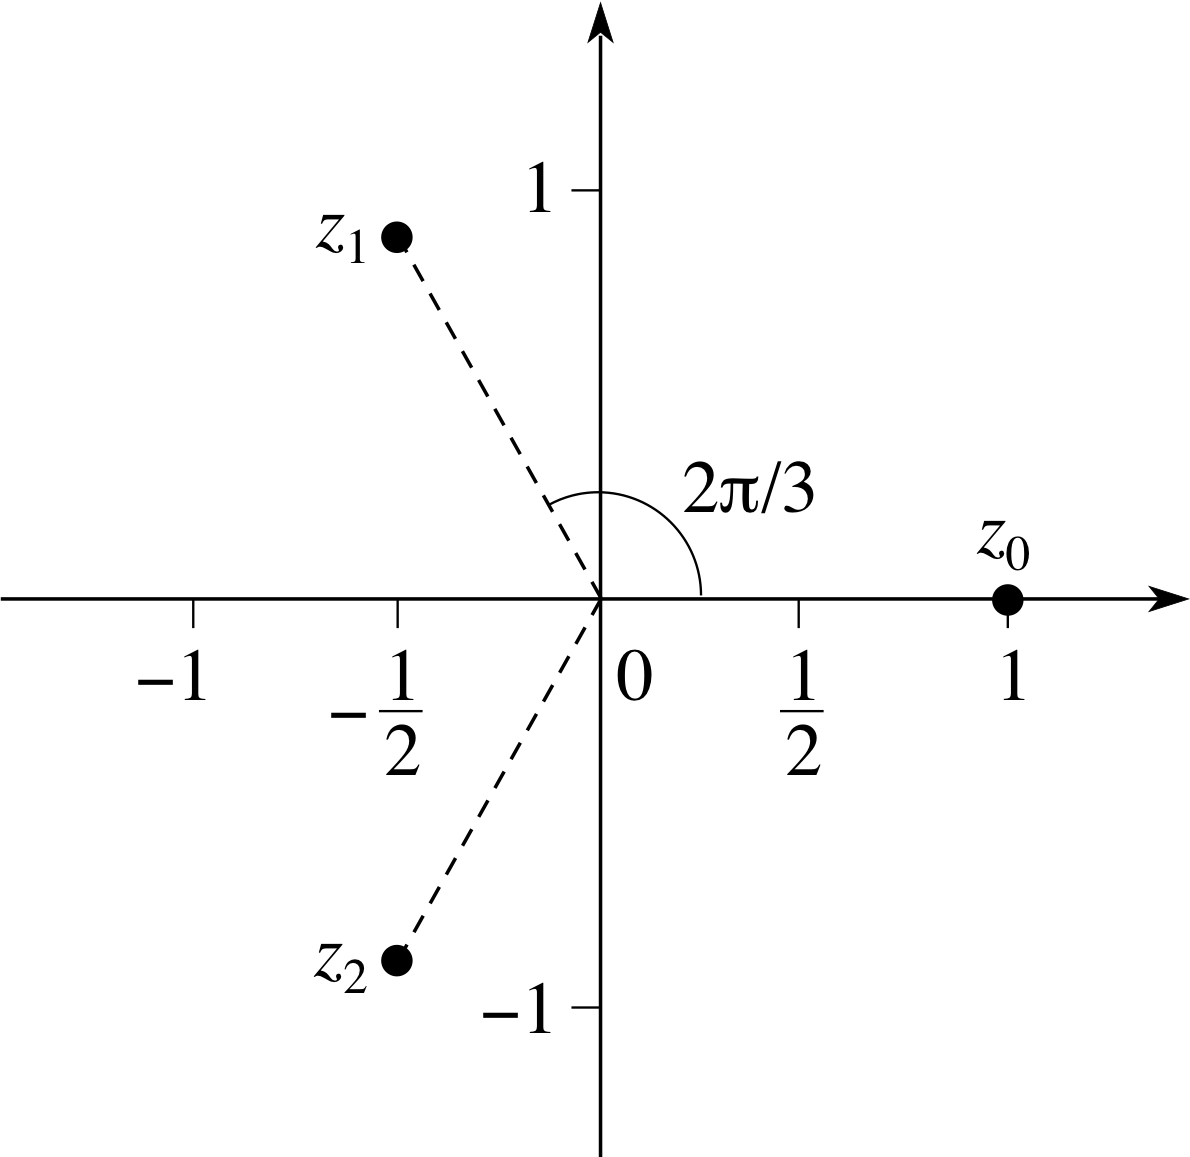 graphics - Plot $\arg(z)$ in an Argand diagram and display ...